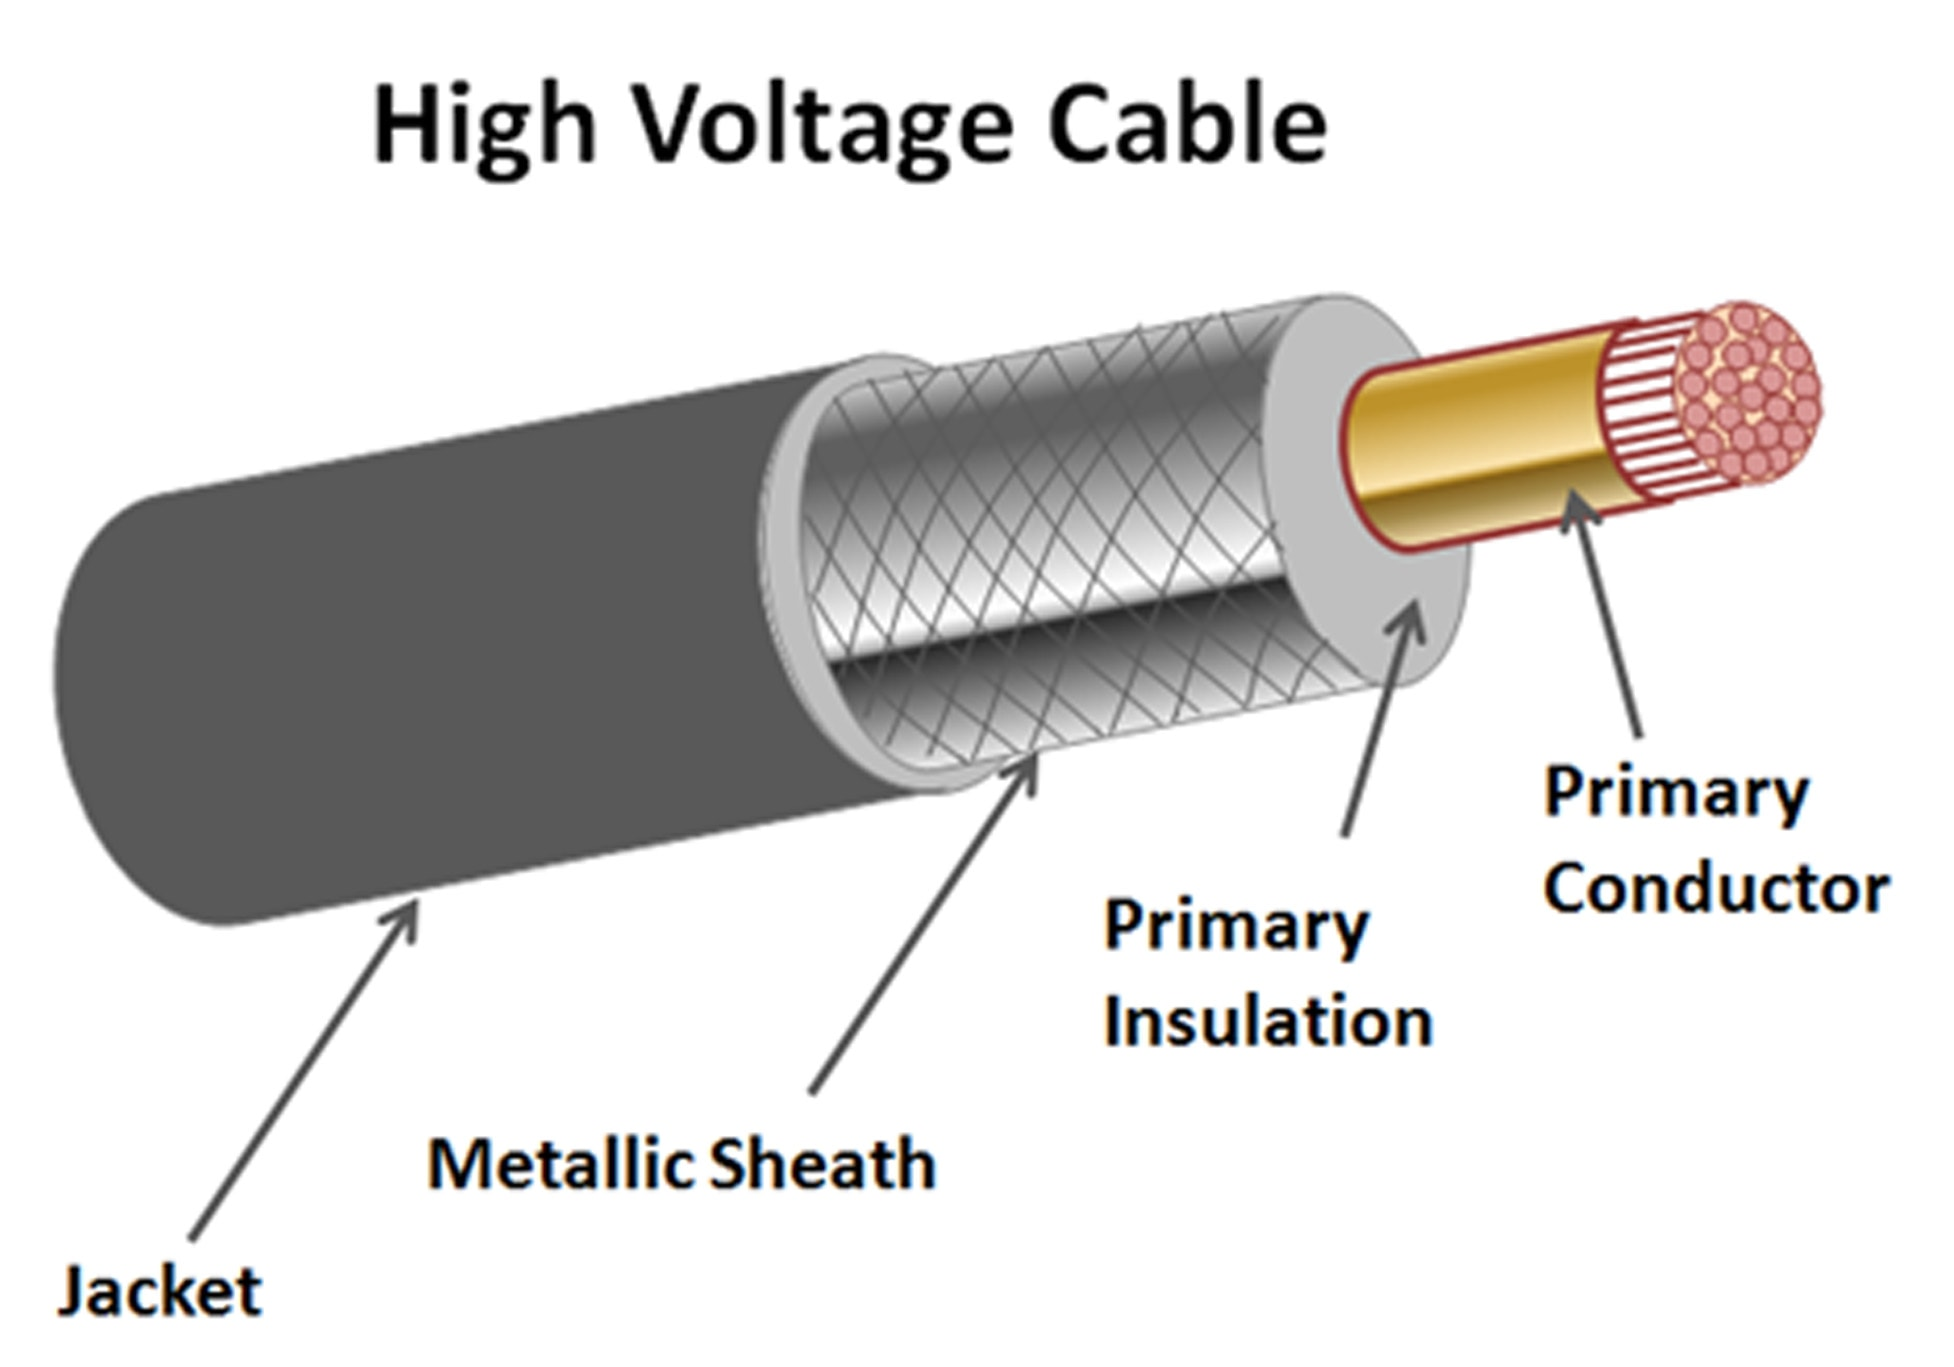 Fig. 1: Simple HV cable showing polymeric jacket that may require surge protection. power cables Sheath Voltage Limiters Protect HV Power Cables Figure 1 Simple HV Cable Graphic